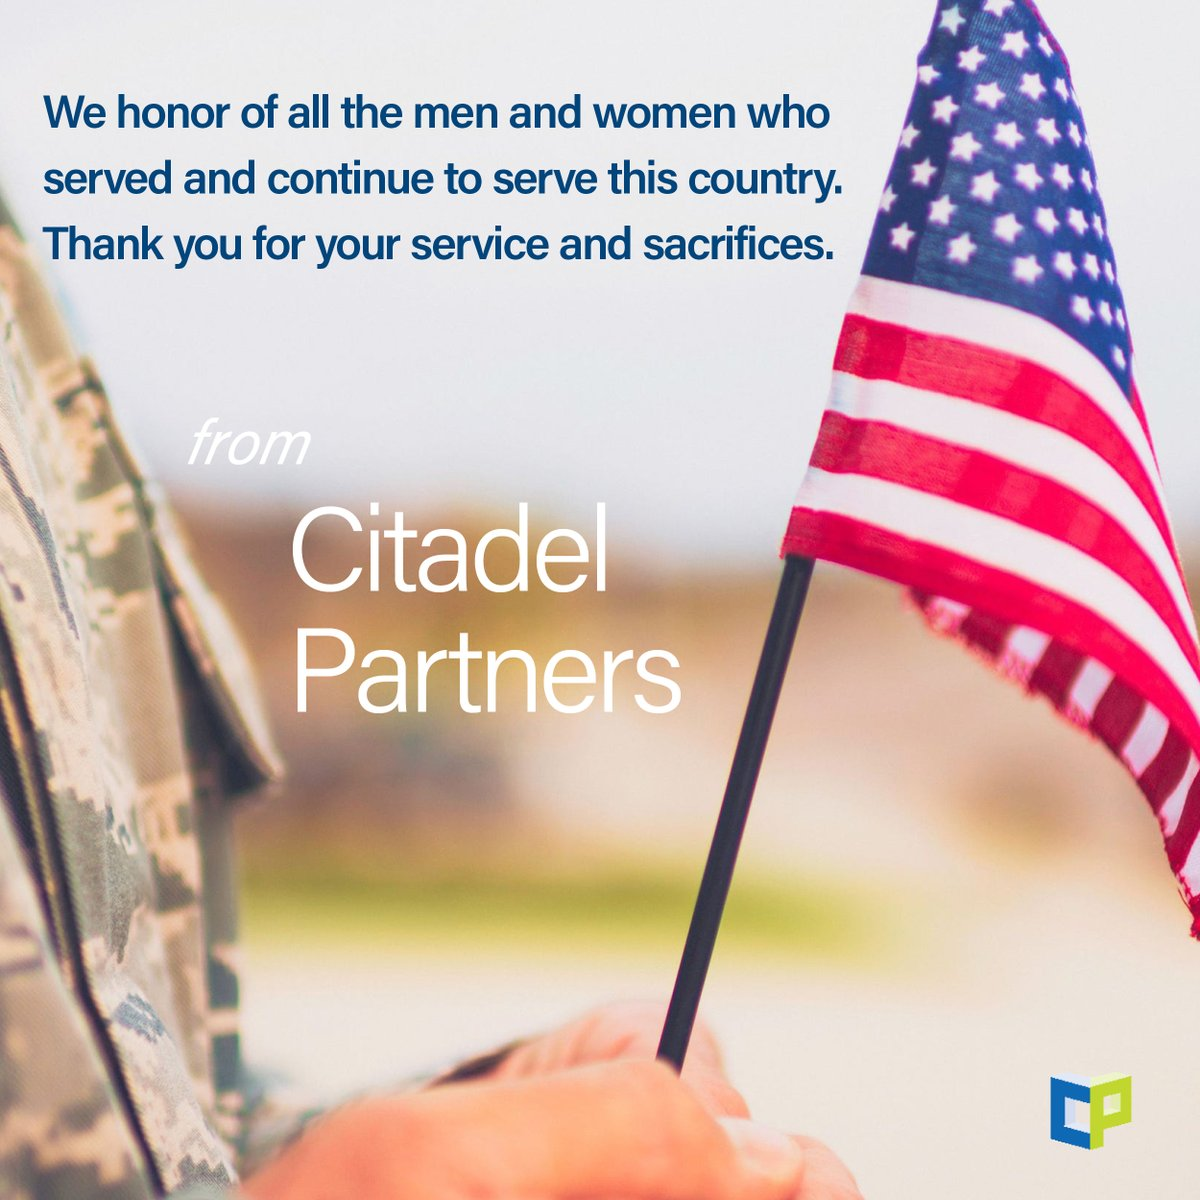 test Twitter Media - There is no greater debt of gratitude we owe as Americans than to those who have worn the uniform of the U.S. throughout history and fought for the freedoms we enjoy.  #veteransday #americanpride #citadelpartners #dallascommercialrealestate https://t.co/4UYVSI7bi1